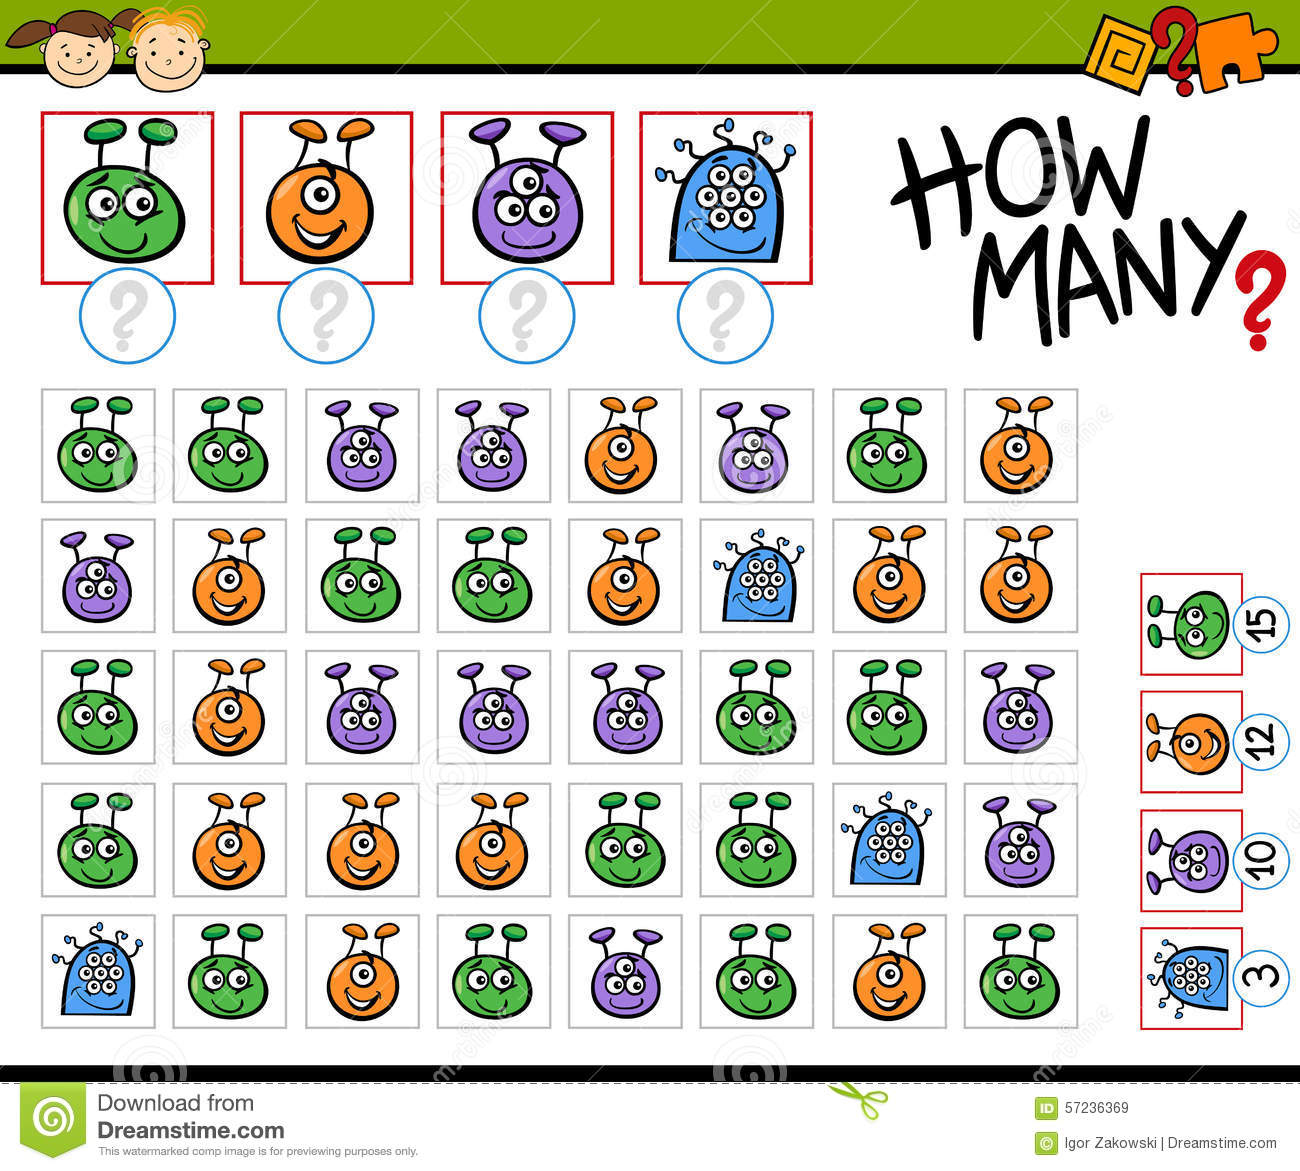 math worksheet : math game cartoon illustration stock vector  image 57236369 : Math Game For Kindergarten